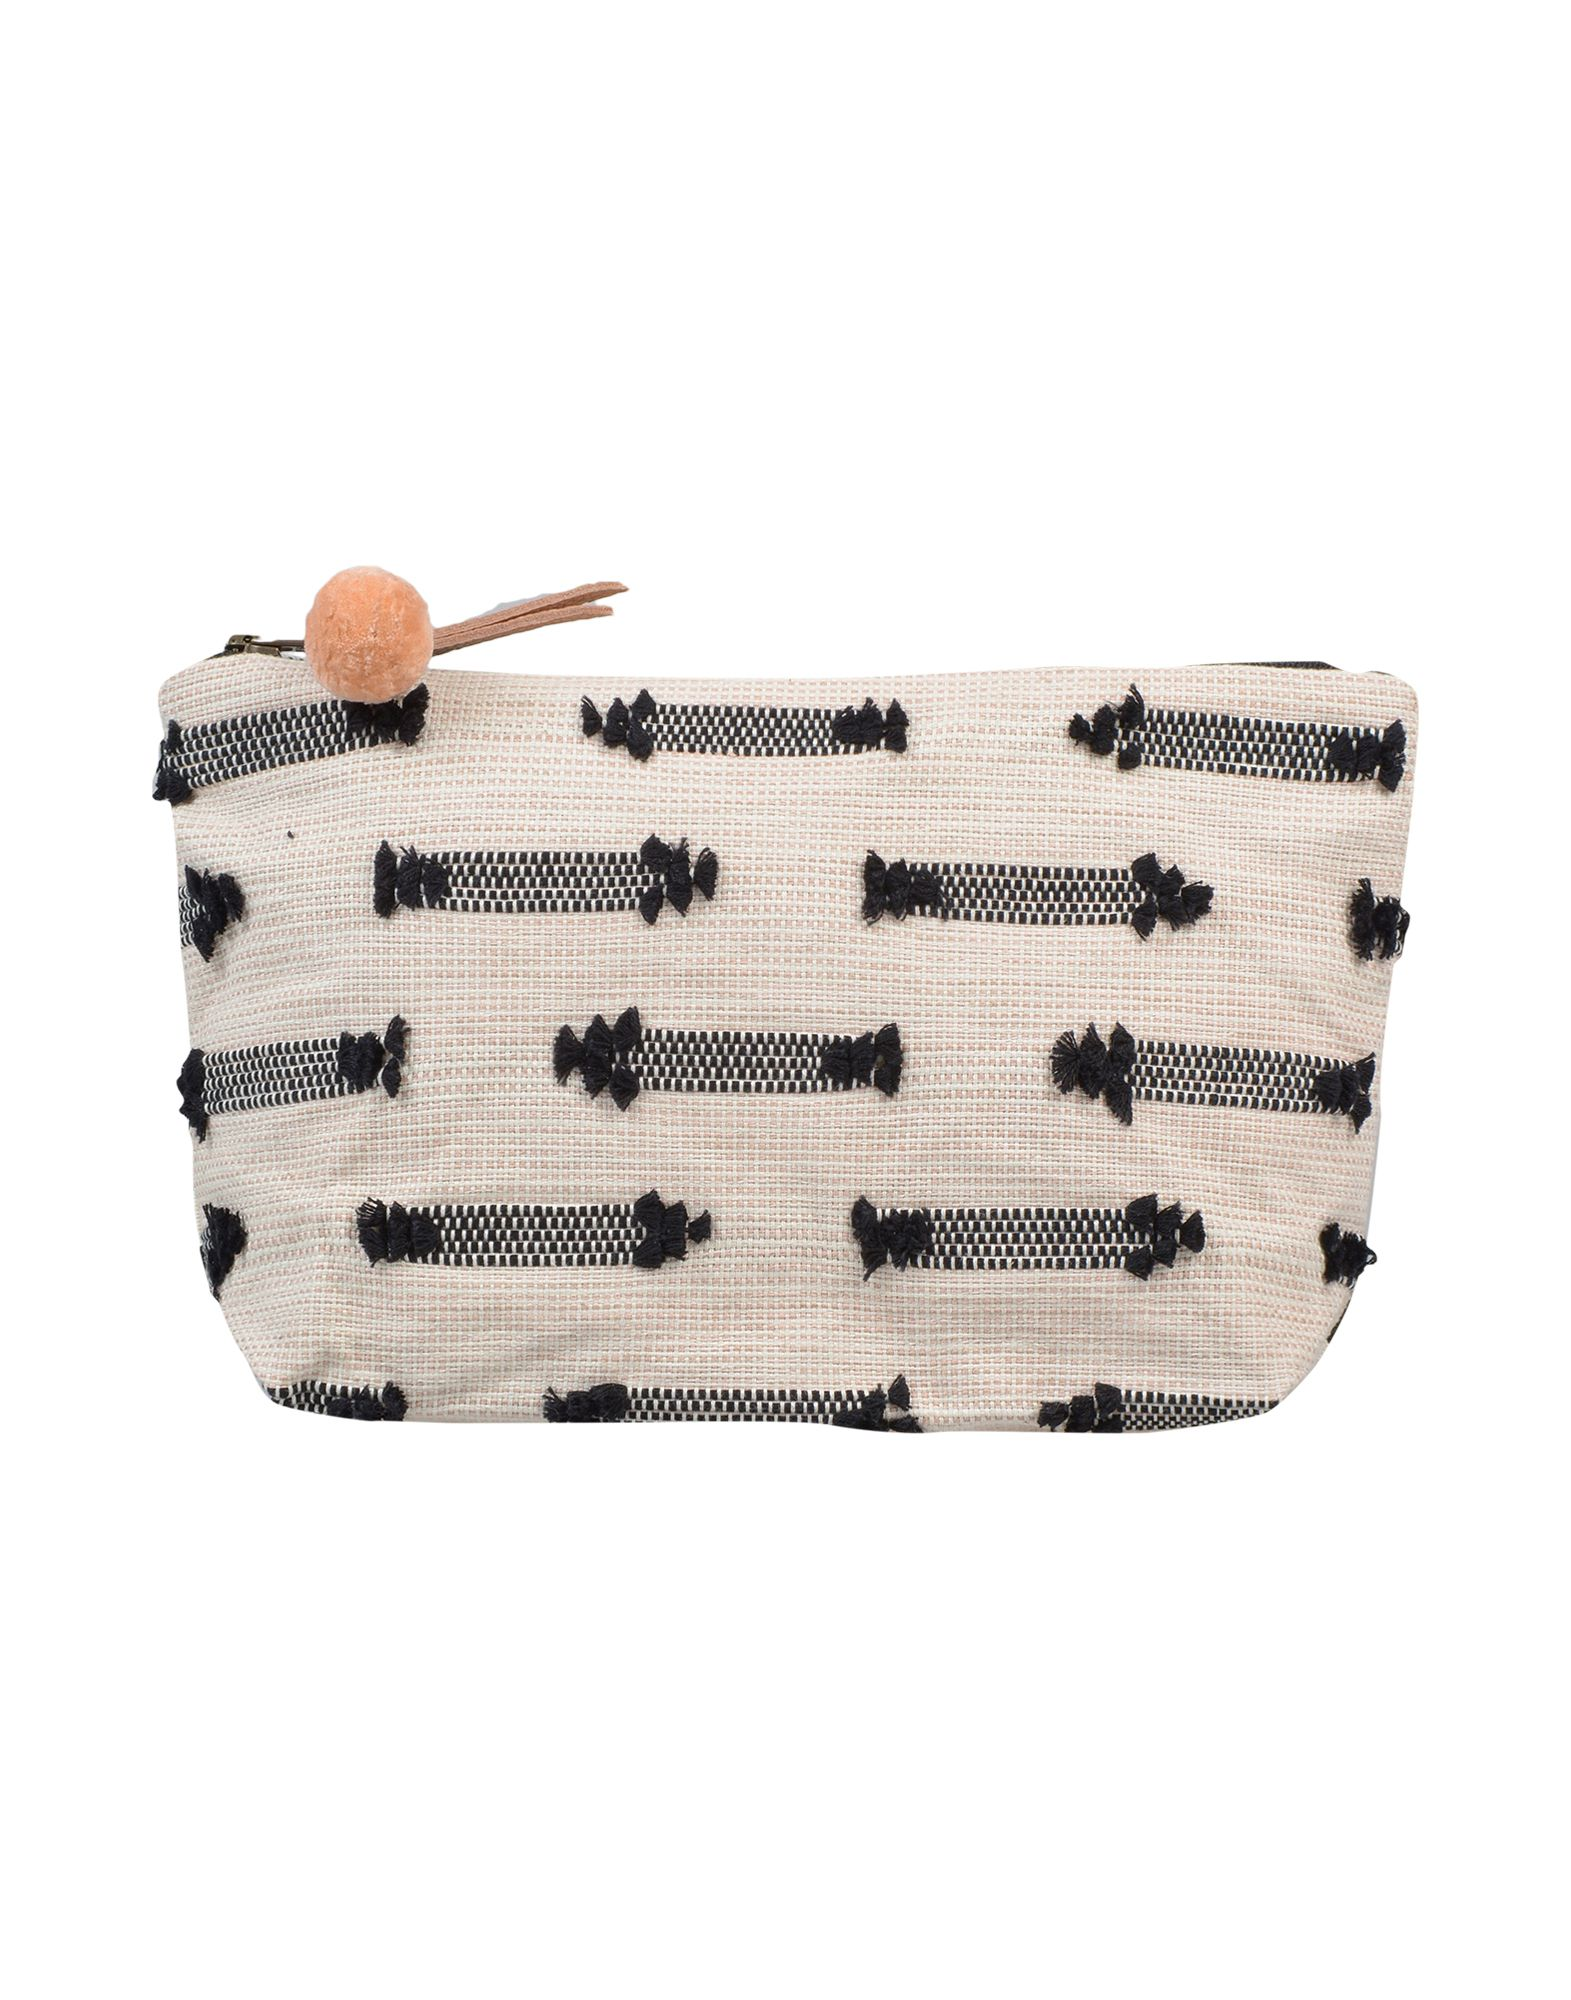 Фото - MERCADO GLOBAL Beauty case women cosmetic bag travel lattice pattern makeup case zipper make up bags organizer storage pouch toiletry kit wash beauty bags